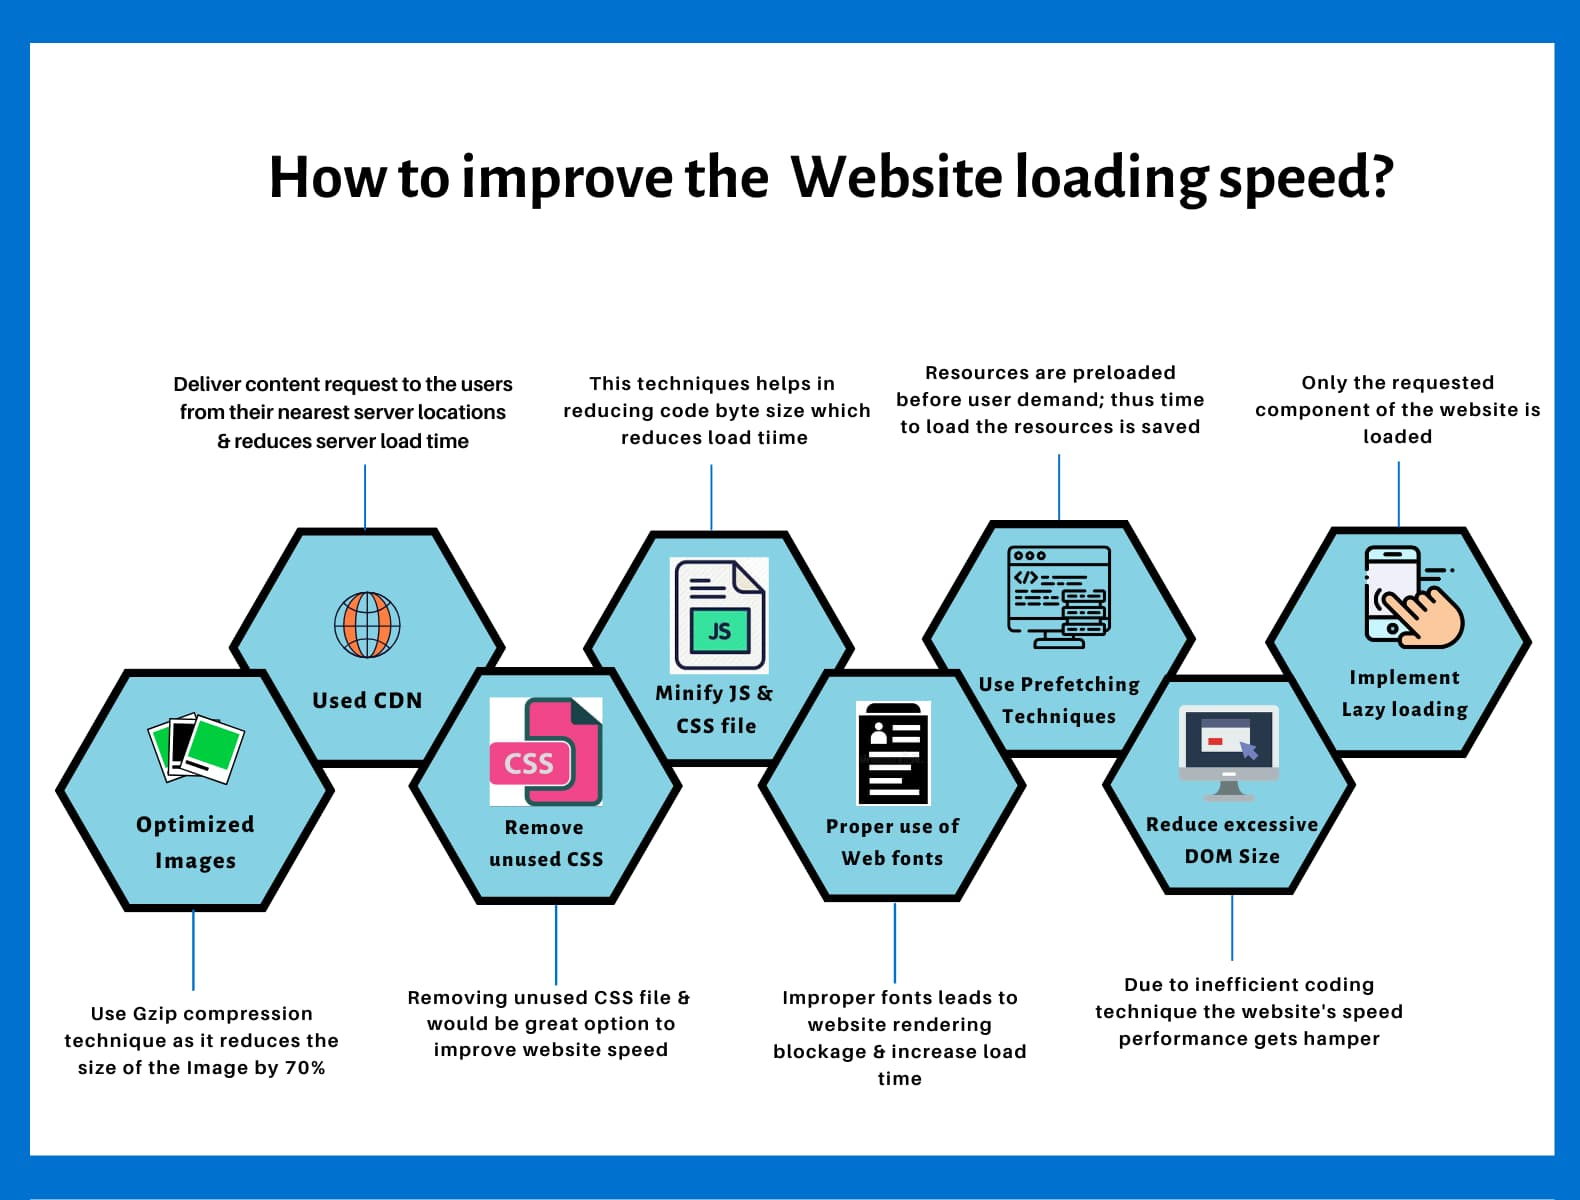 Details on improvement of pagespeed for a website